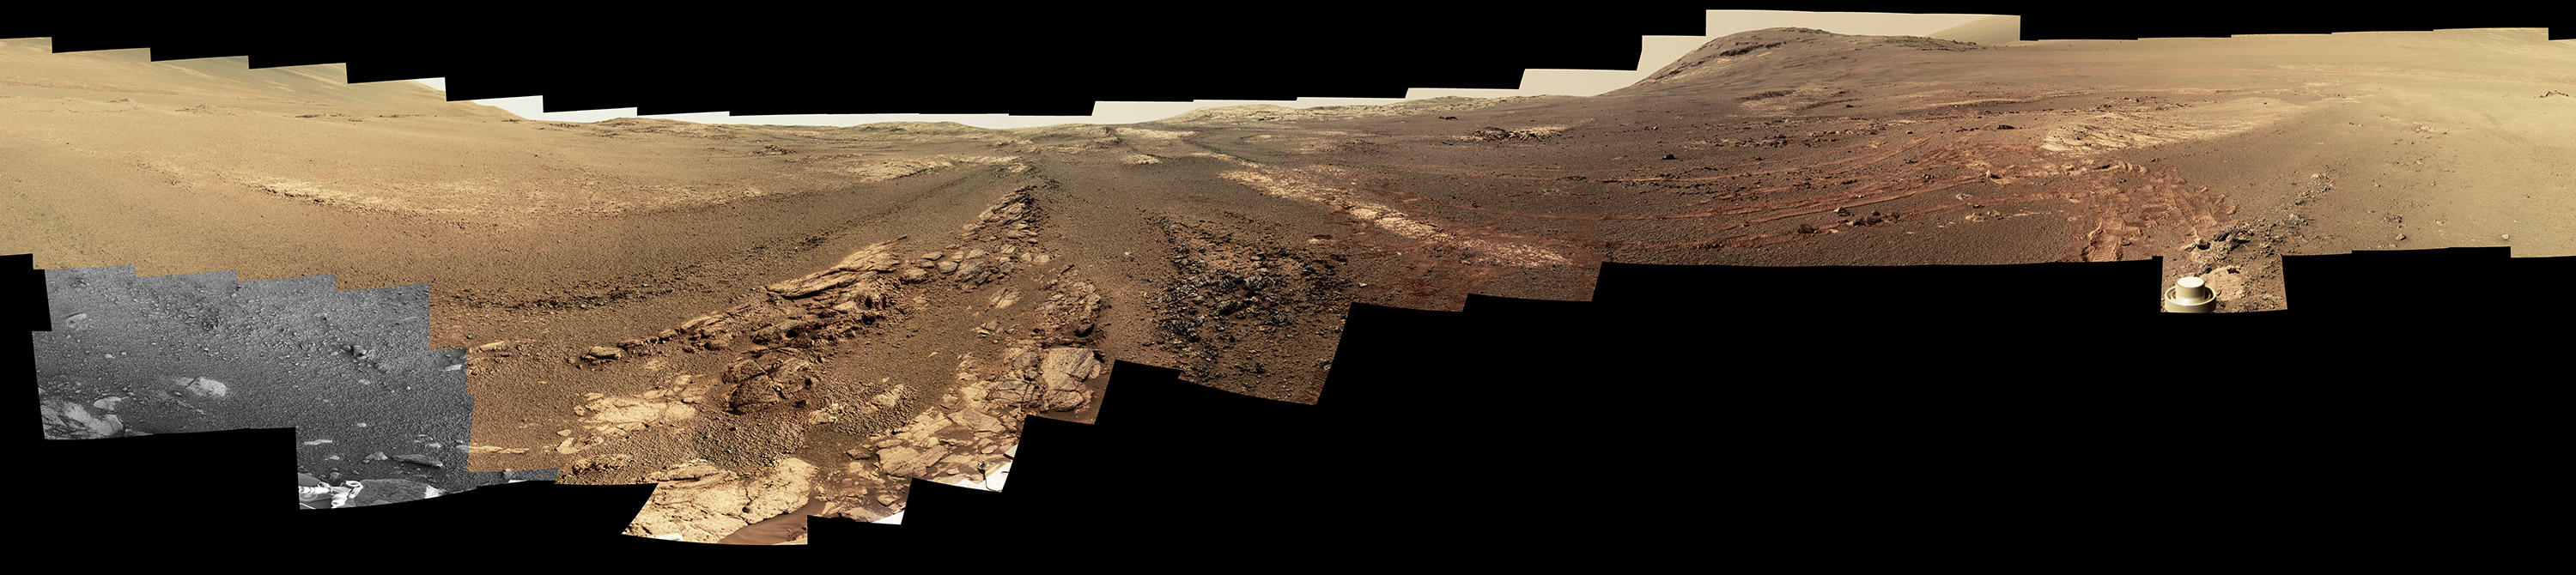 Opportunity's final panorama